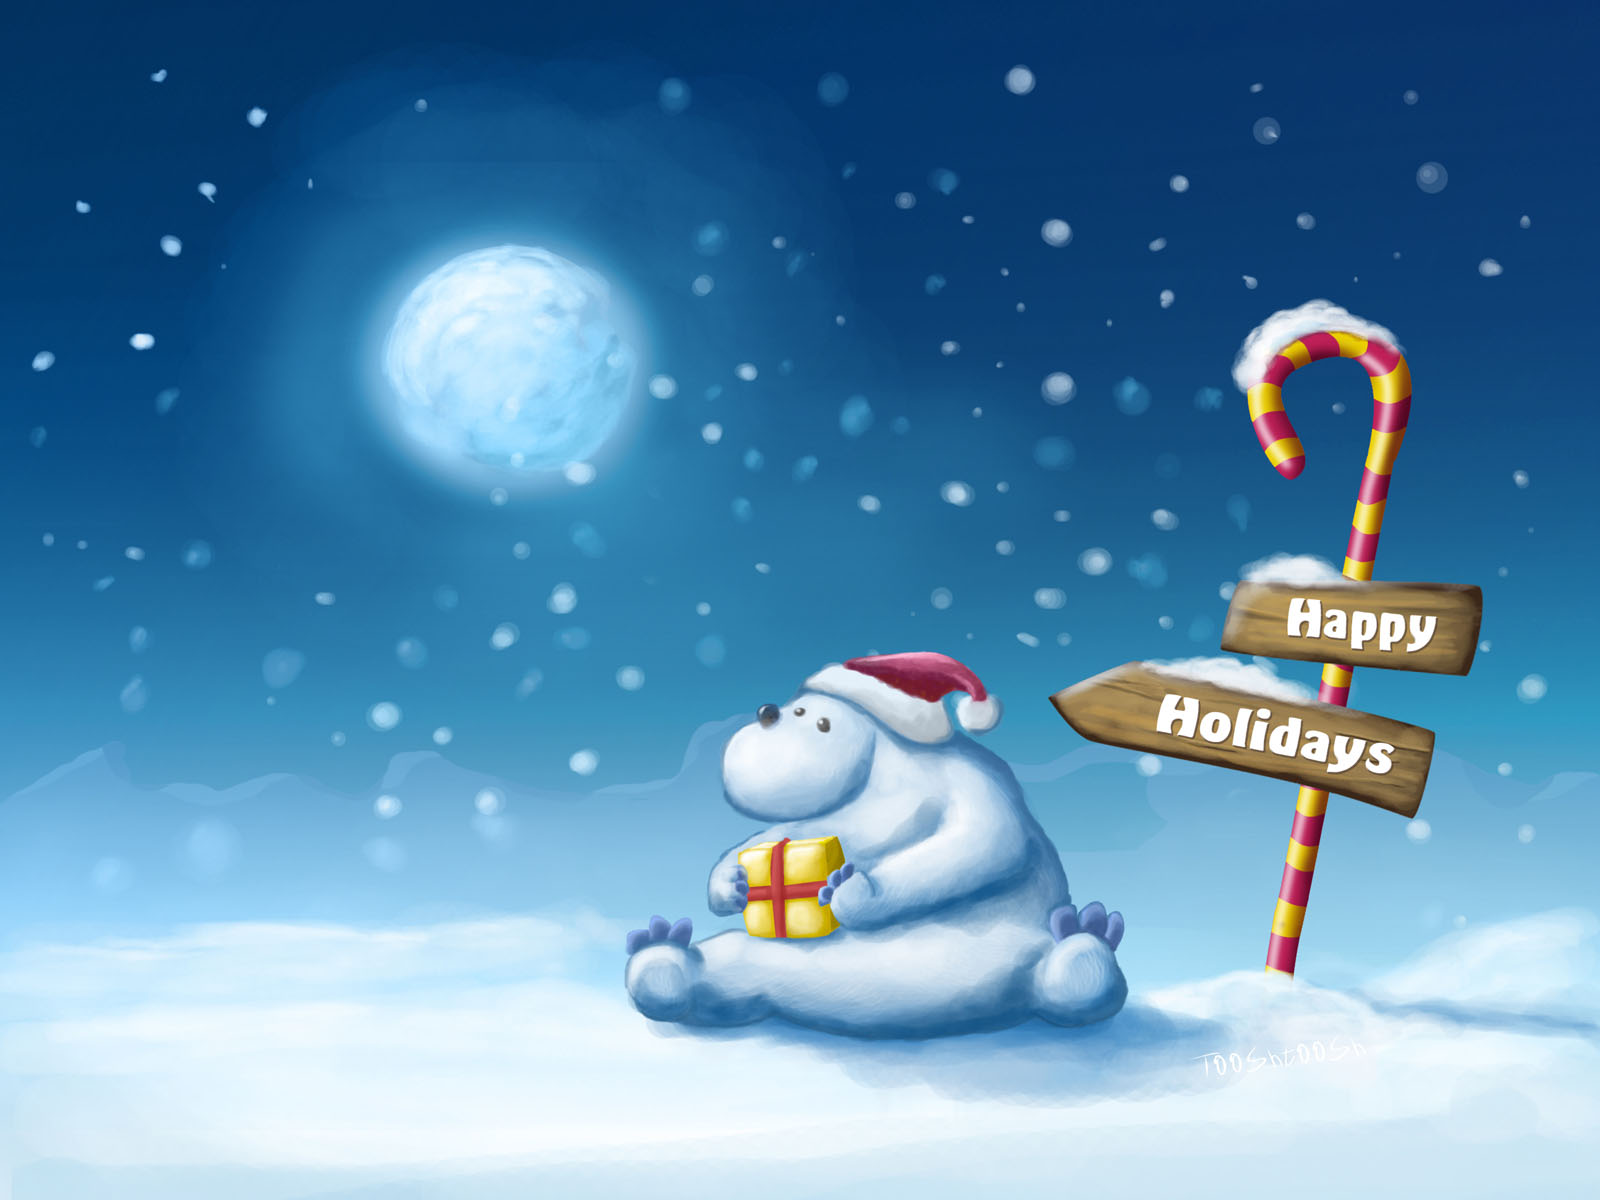 christmas-holiday-powerpoint-background-Christmas-Holiday-PowerPoint-Background-wallpaper-wp5603873